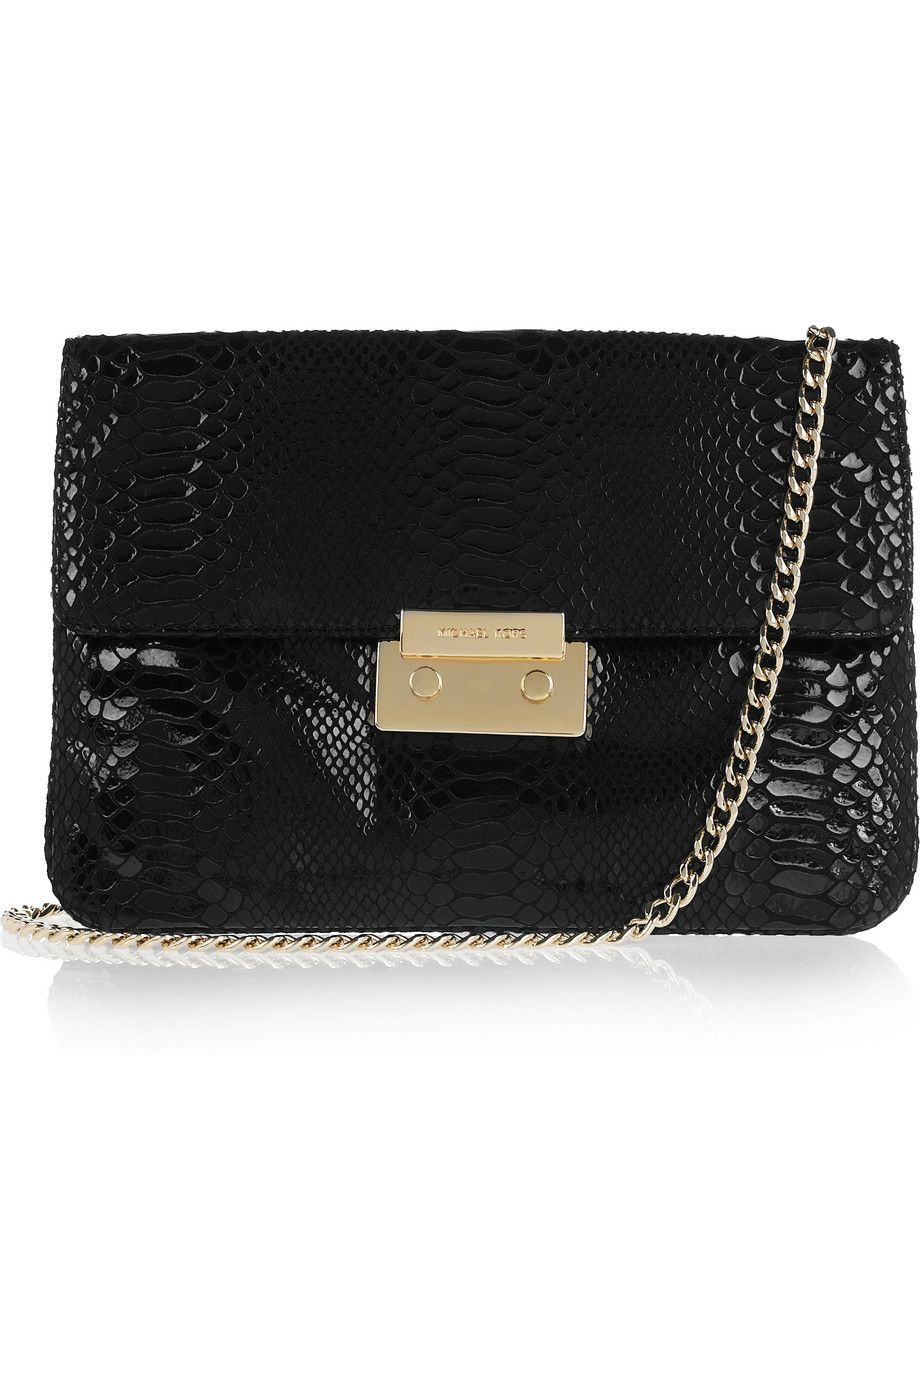 8f21a6a292c3 MICHAEL Michael Kors Sloan python-effect patent-leather clutch - 60% Off  Now at THE OUTNET